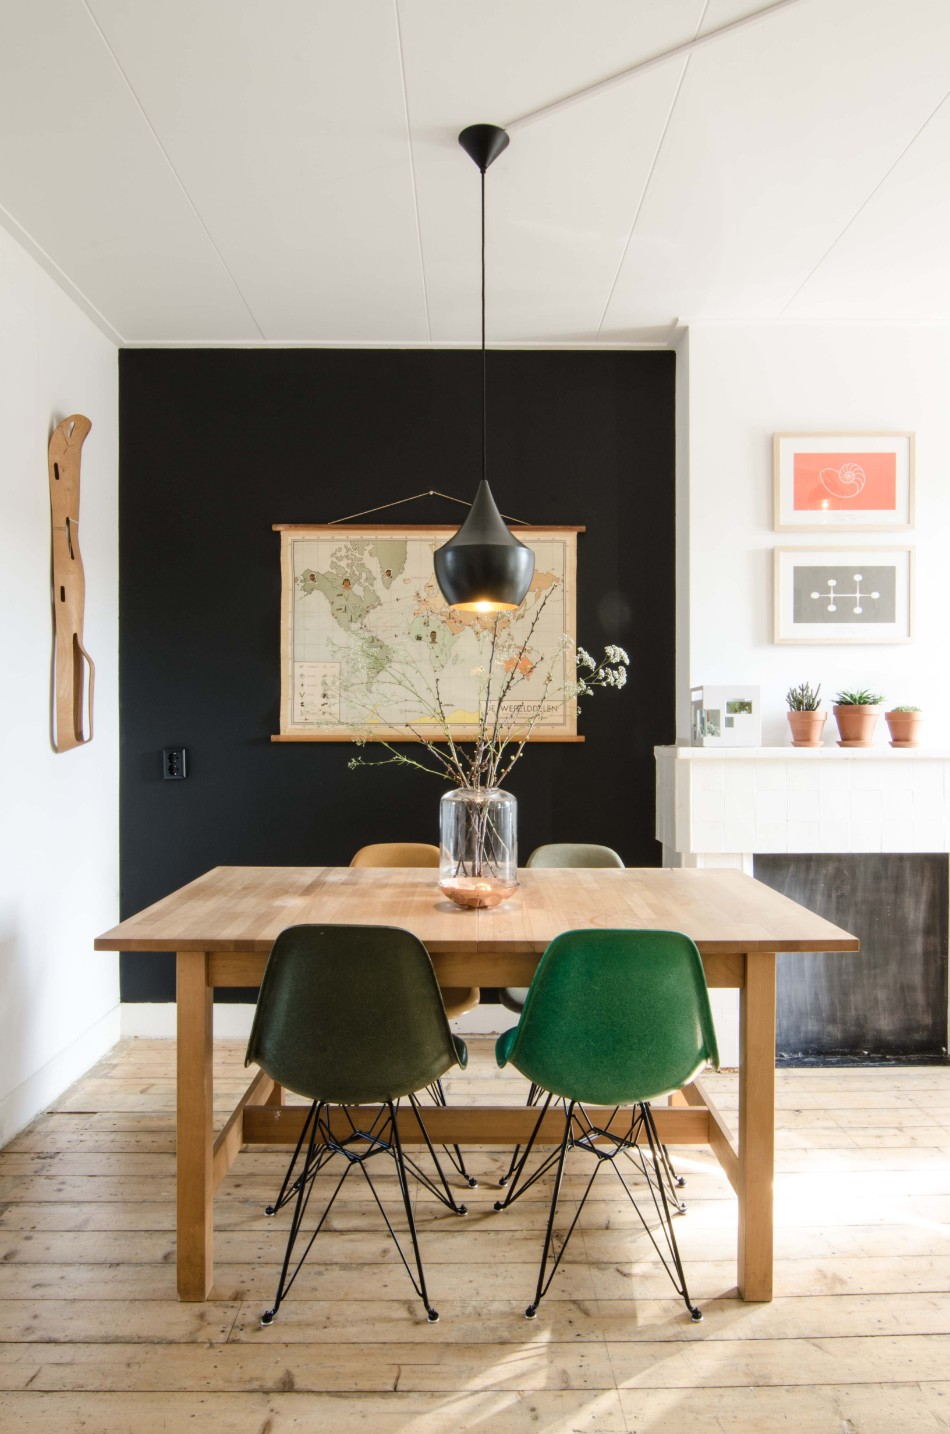 dining table How To Mix and Match Chairs With Your Dining Table 5abd0d1f1a5a16bbb62b0bd5da0c2b97 1